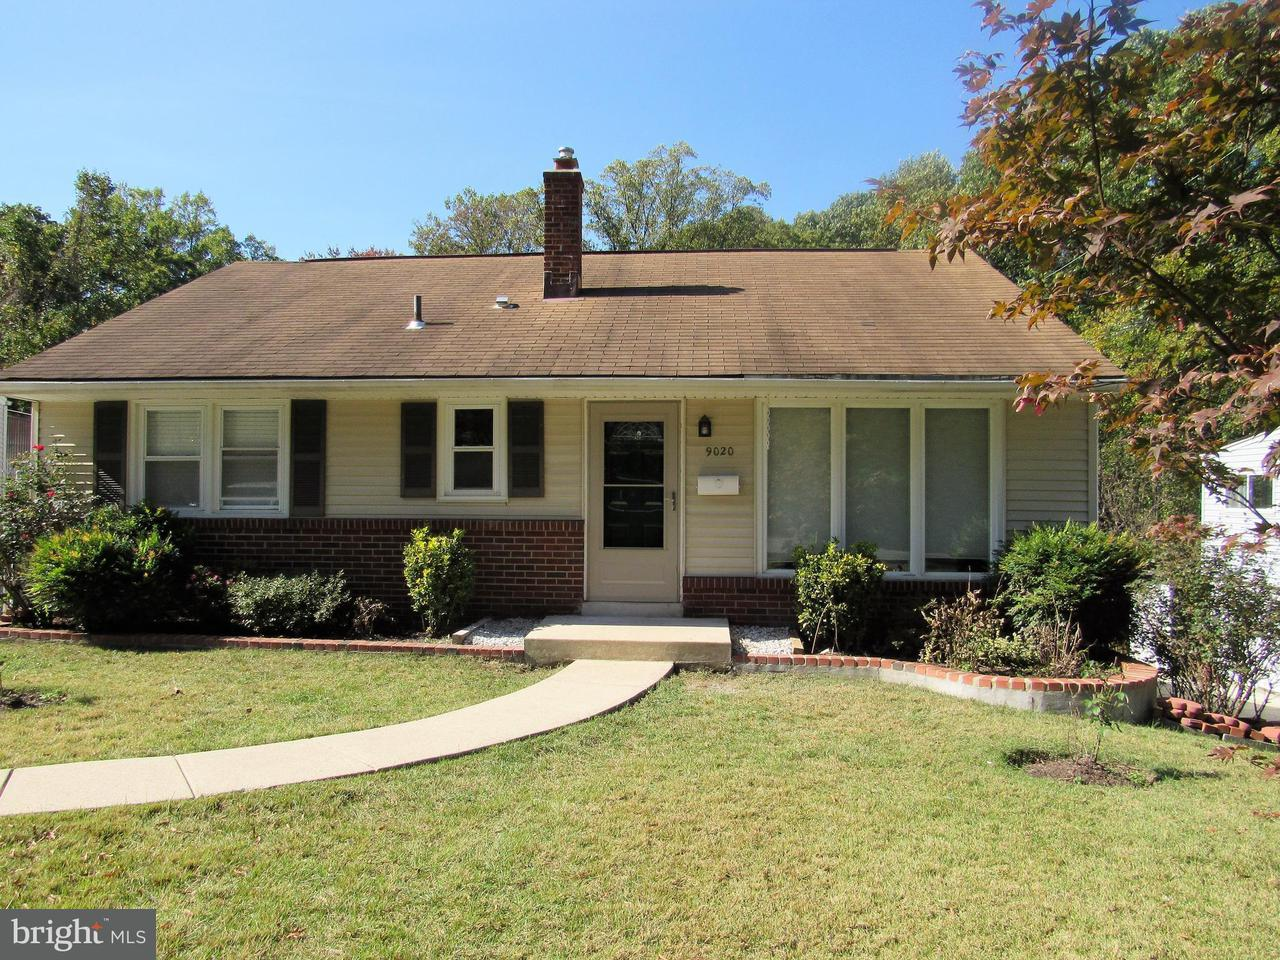 Other Residential for Rent at 9020 Autoville Dr College Park, Maryland 20740 United States